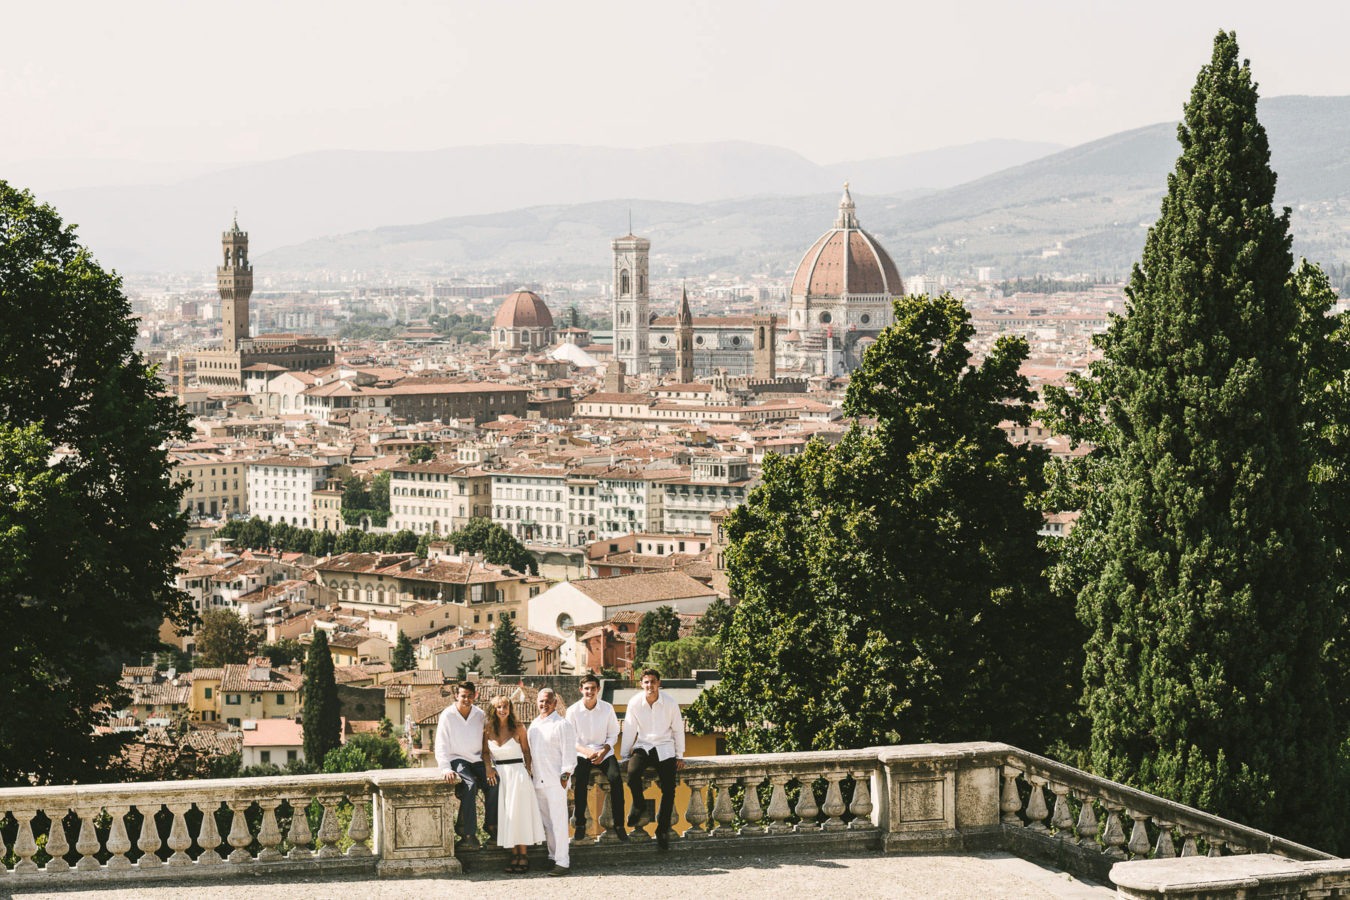 Lovely vacation family photo tour in Florence panoramic site of San Miniato al Monte near Piazzale Michelangelo